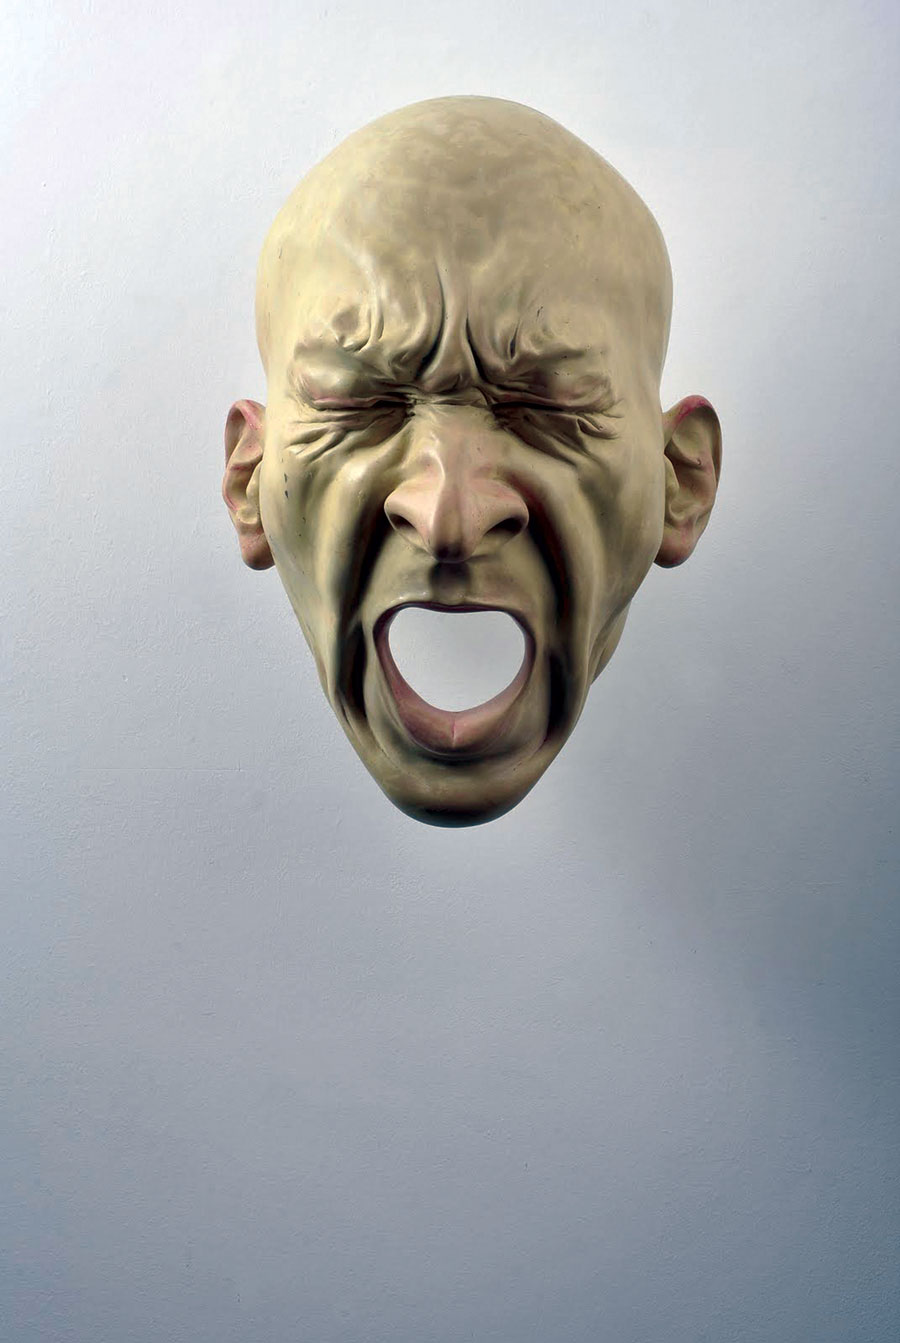 Bogdan Rata, Scream, polyester, synthetic resin, metal, paint, 2008, 57x46x34 cm